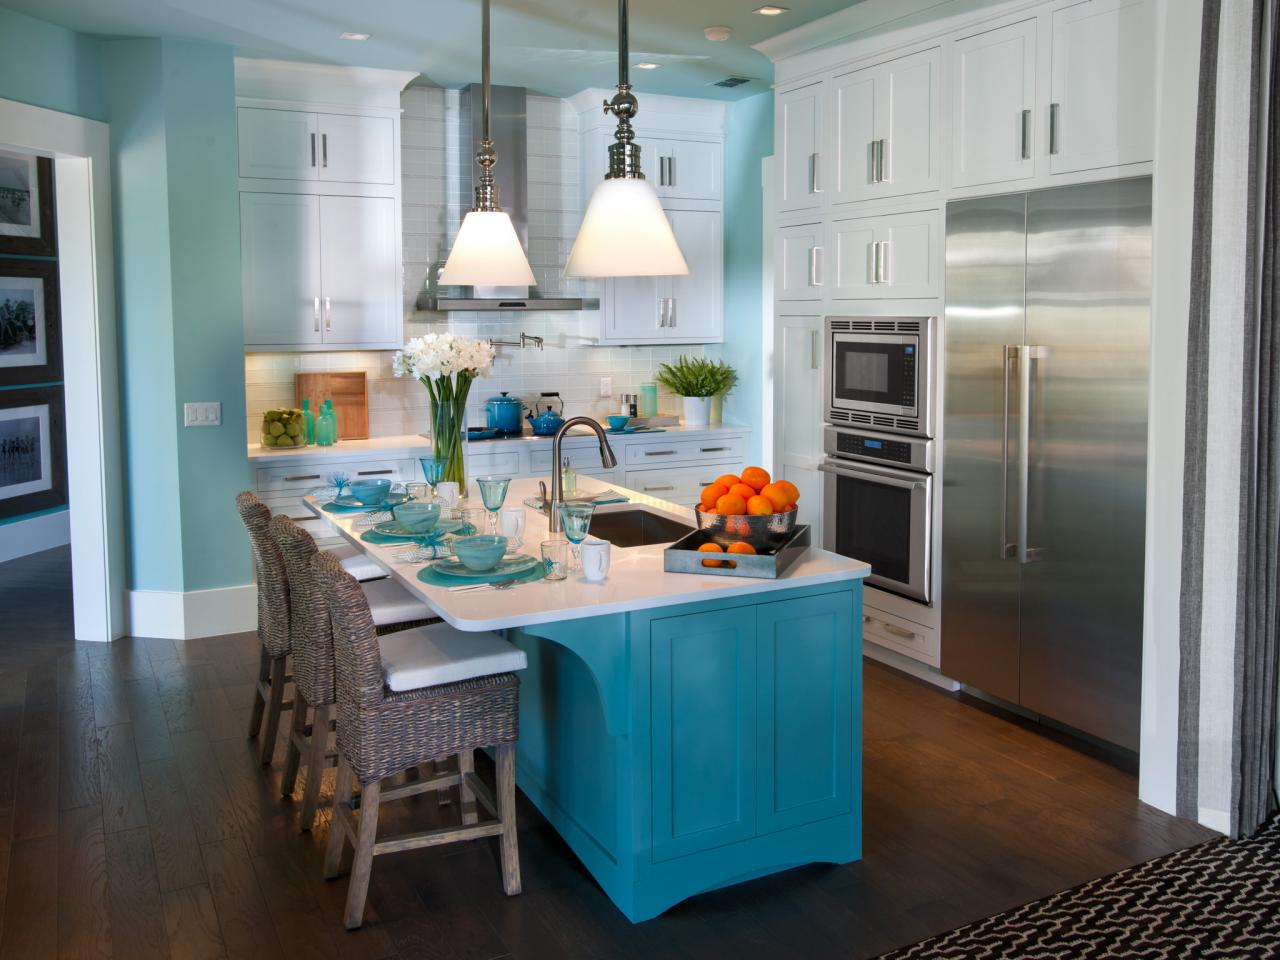 Painting Kitchen Islands: Pictures, Ideas & Tips From HGTV | HGTV